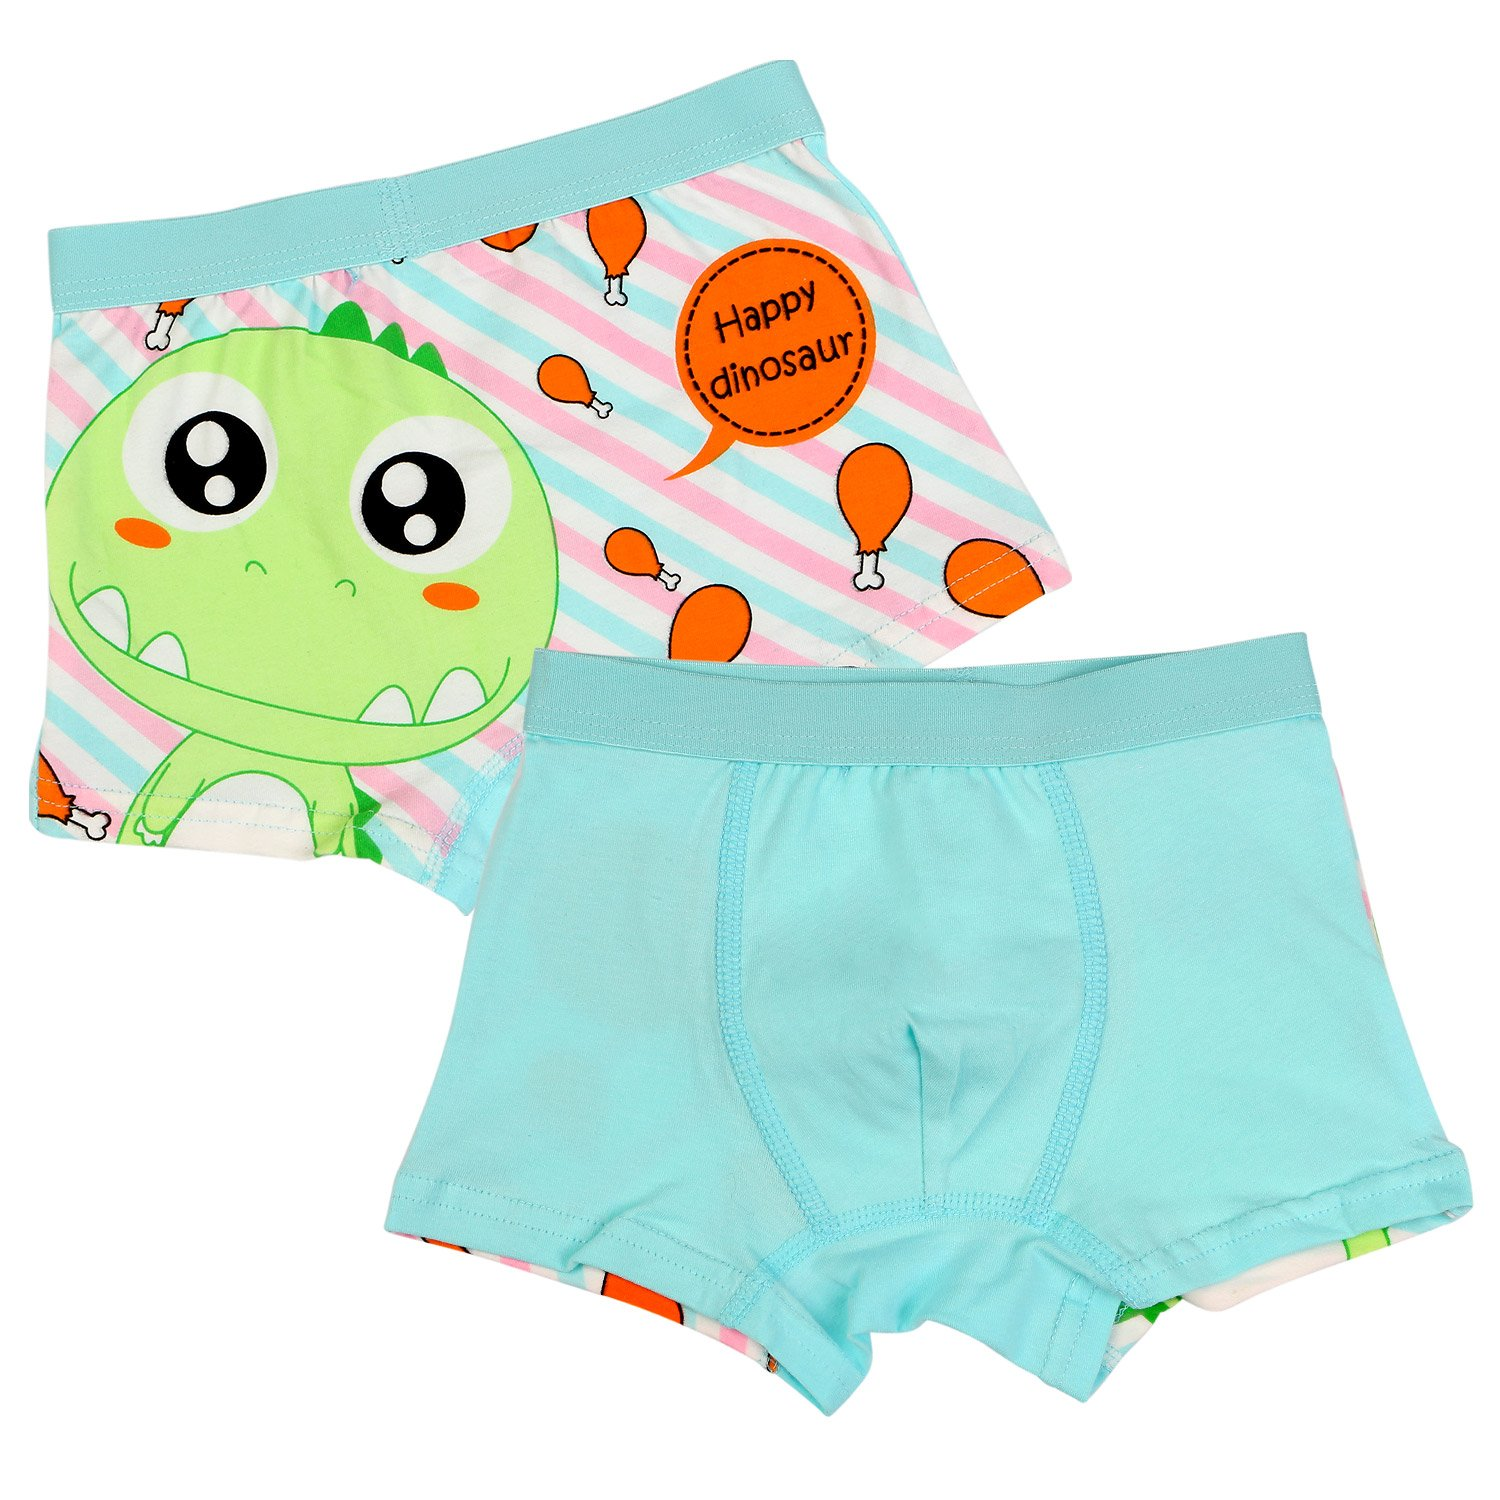 BOOPH Little Boys Underwear, Cotton Dinosaur Baby Toddler Boxer Briefs Underpant for Boy 4-6 Years (Pack of 4) by BOOPH (Image #2)